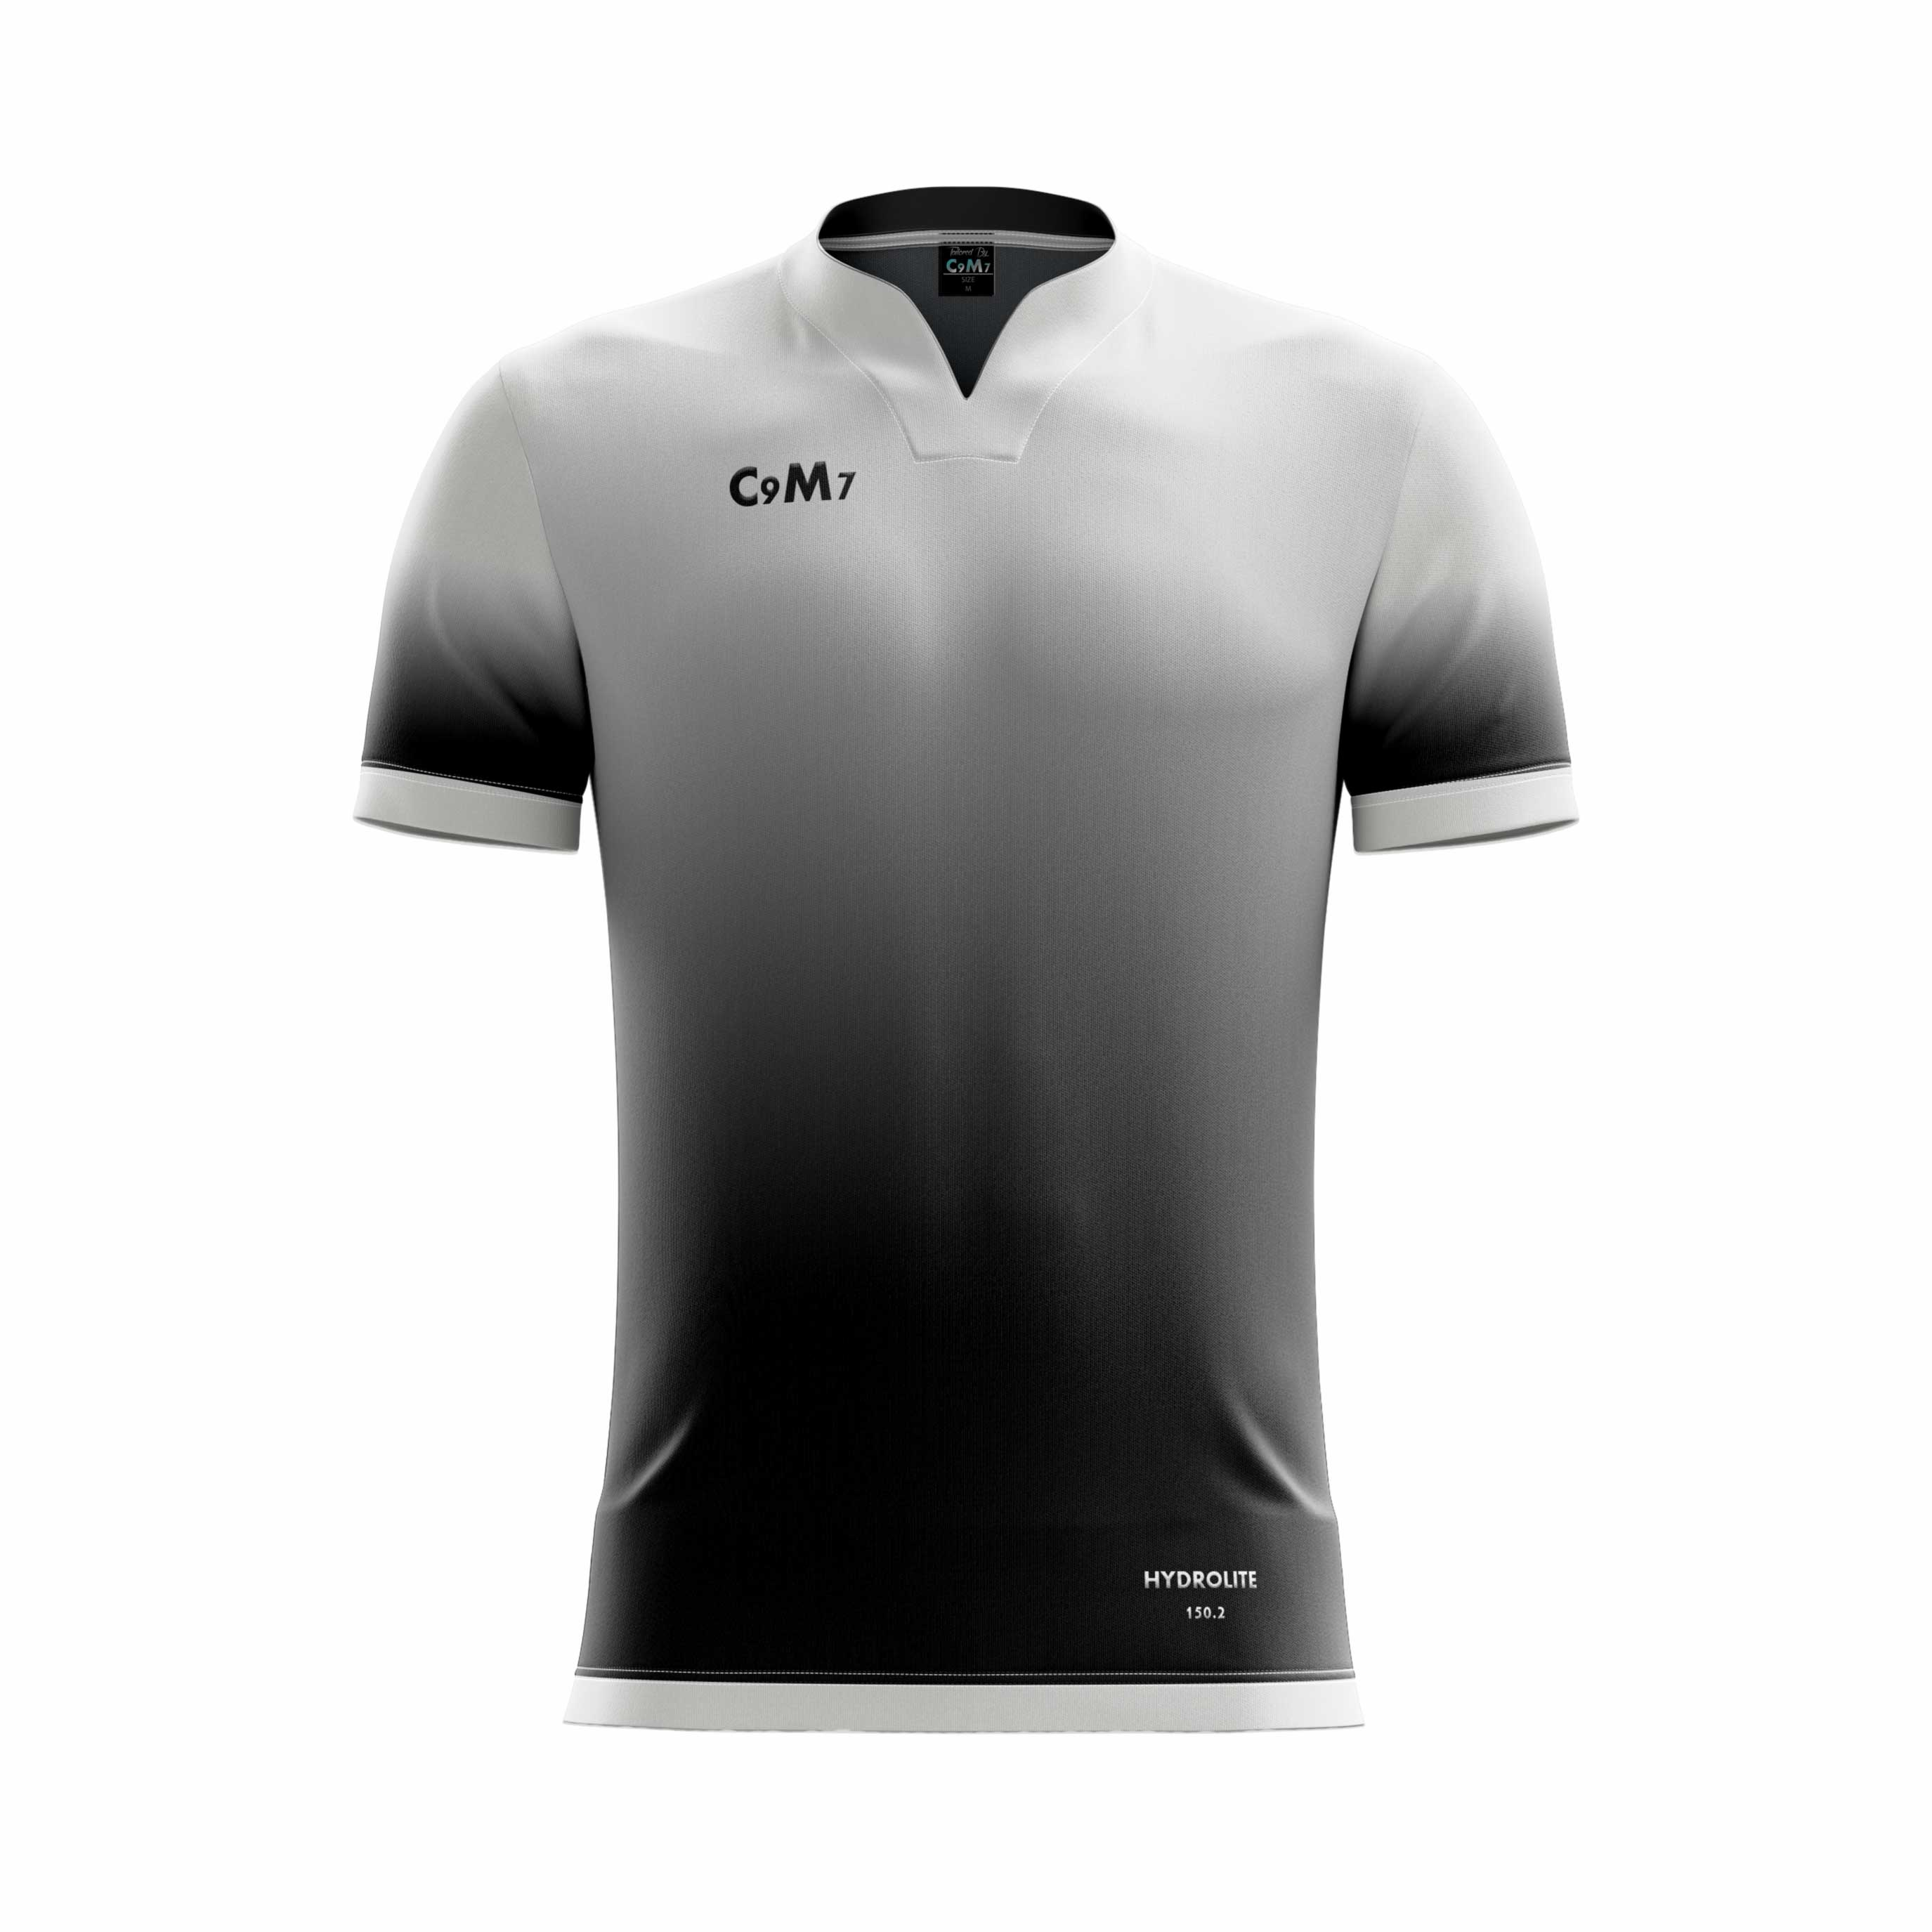 cc09c4d27c50 The Elastico Kids Custom Football Team Kits